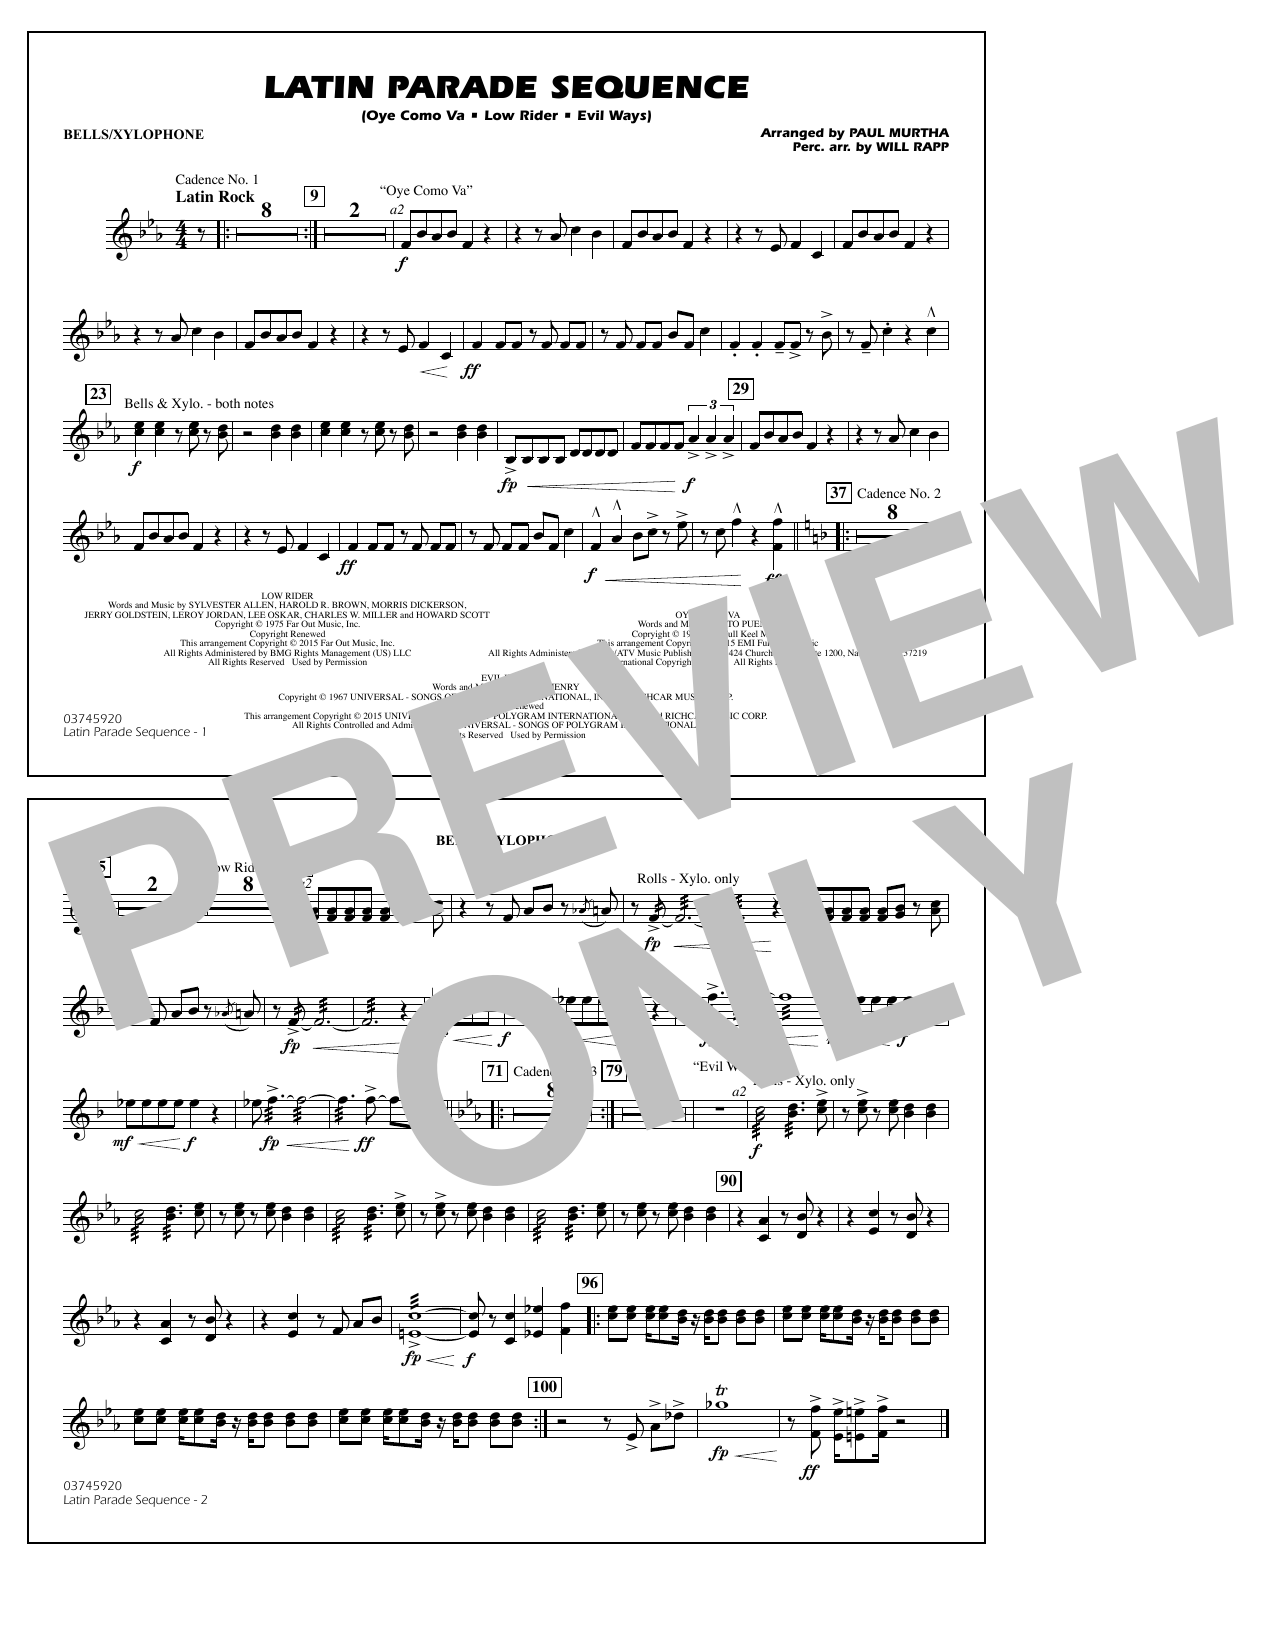 Paul Murtha Latin Parade Sequence - Bells/Xylophone sheet music notes and chords